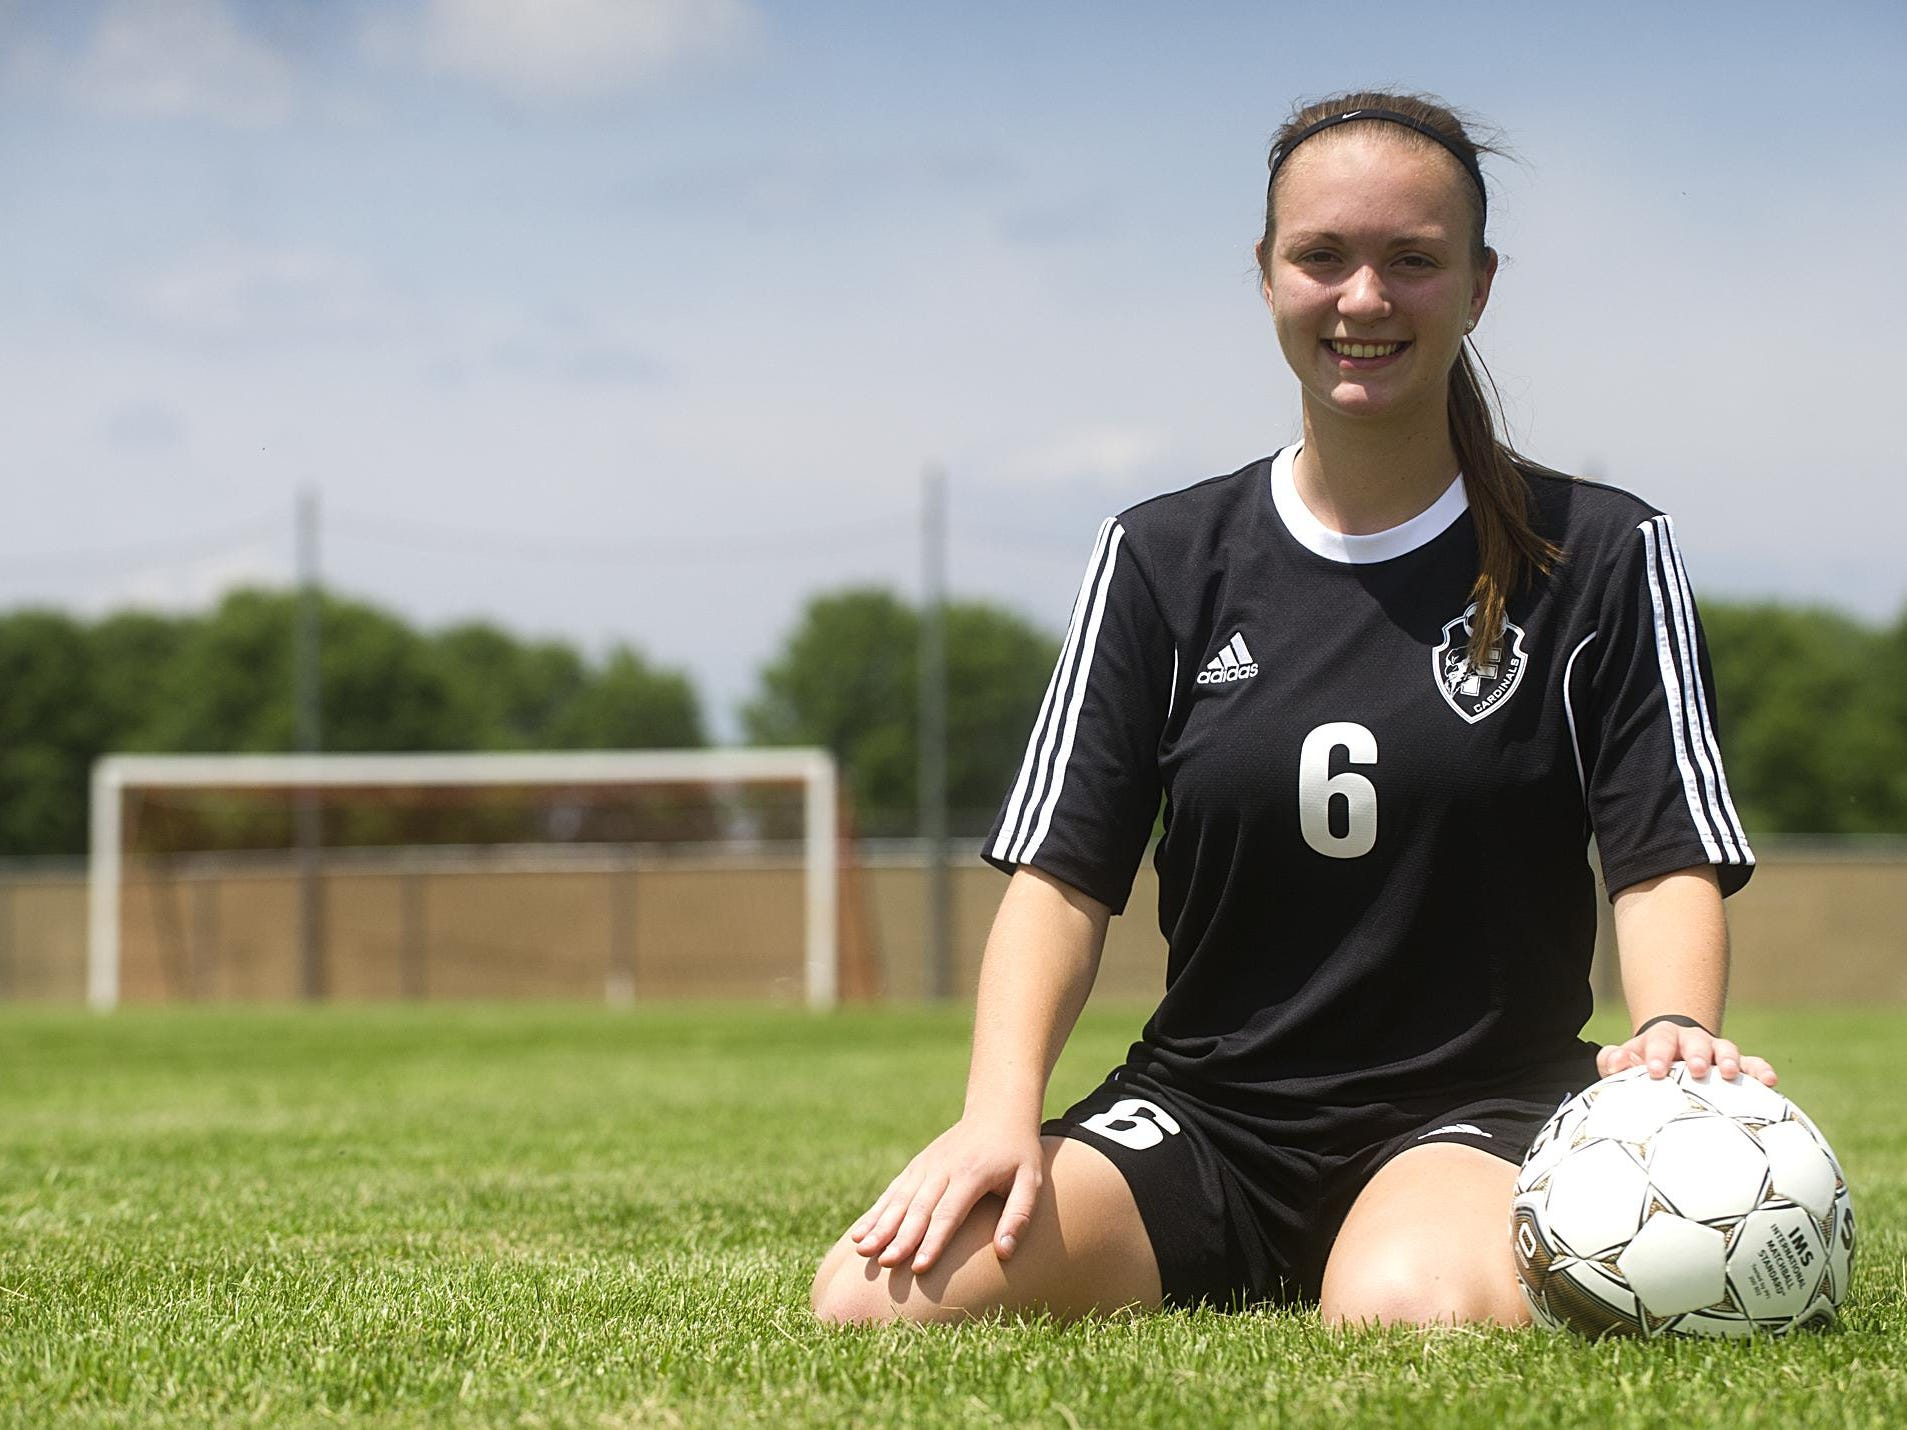 One of the more versatile players in the region, Fond du Lac's Maddison Te Stroete is the All-Area Girls Soccer Player of the Year.